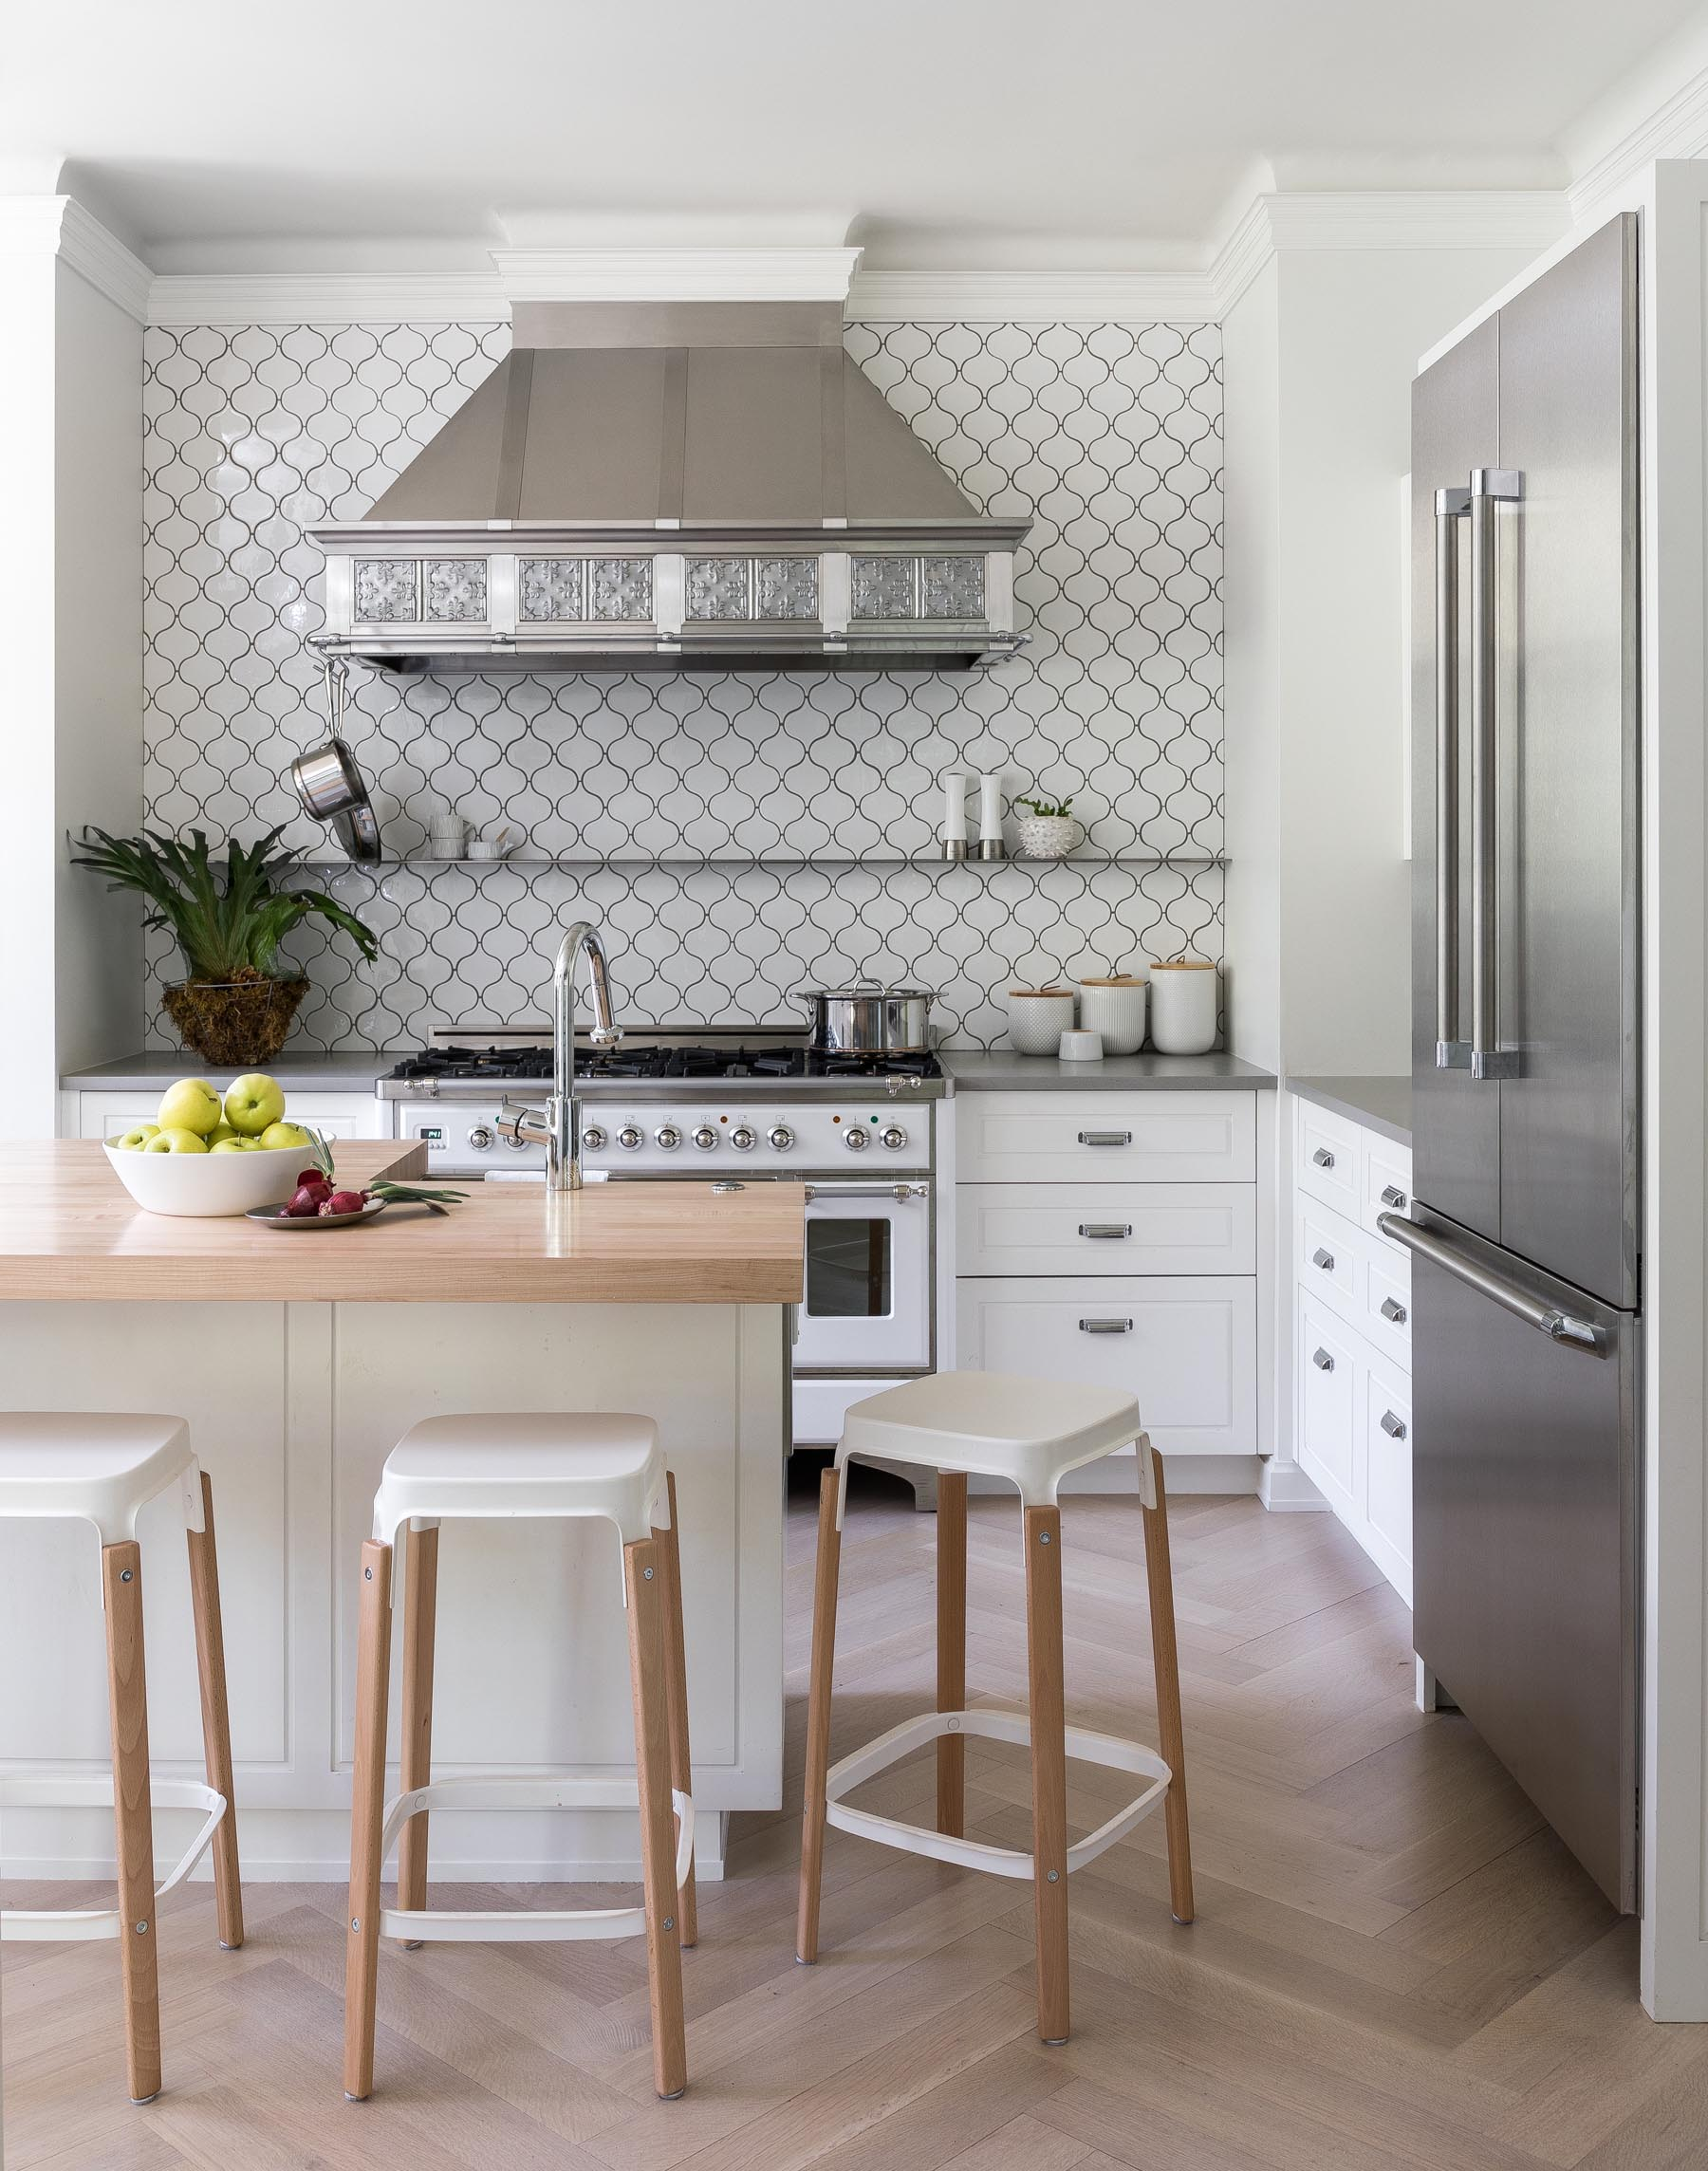 In this remodeled kitchen, there's wood flooring in a herringbone pattern, white cabinets, a patterned white tile with dark grout, and stainless steel appliances. An island with a wood countertop complements the flooring.